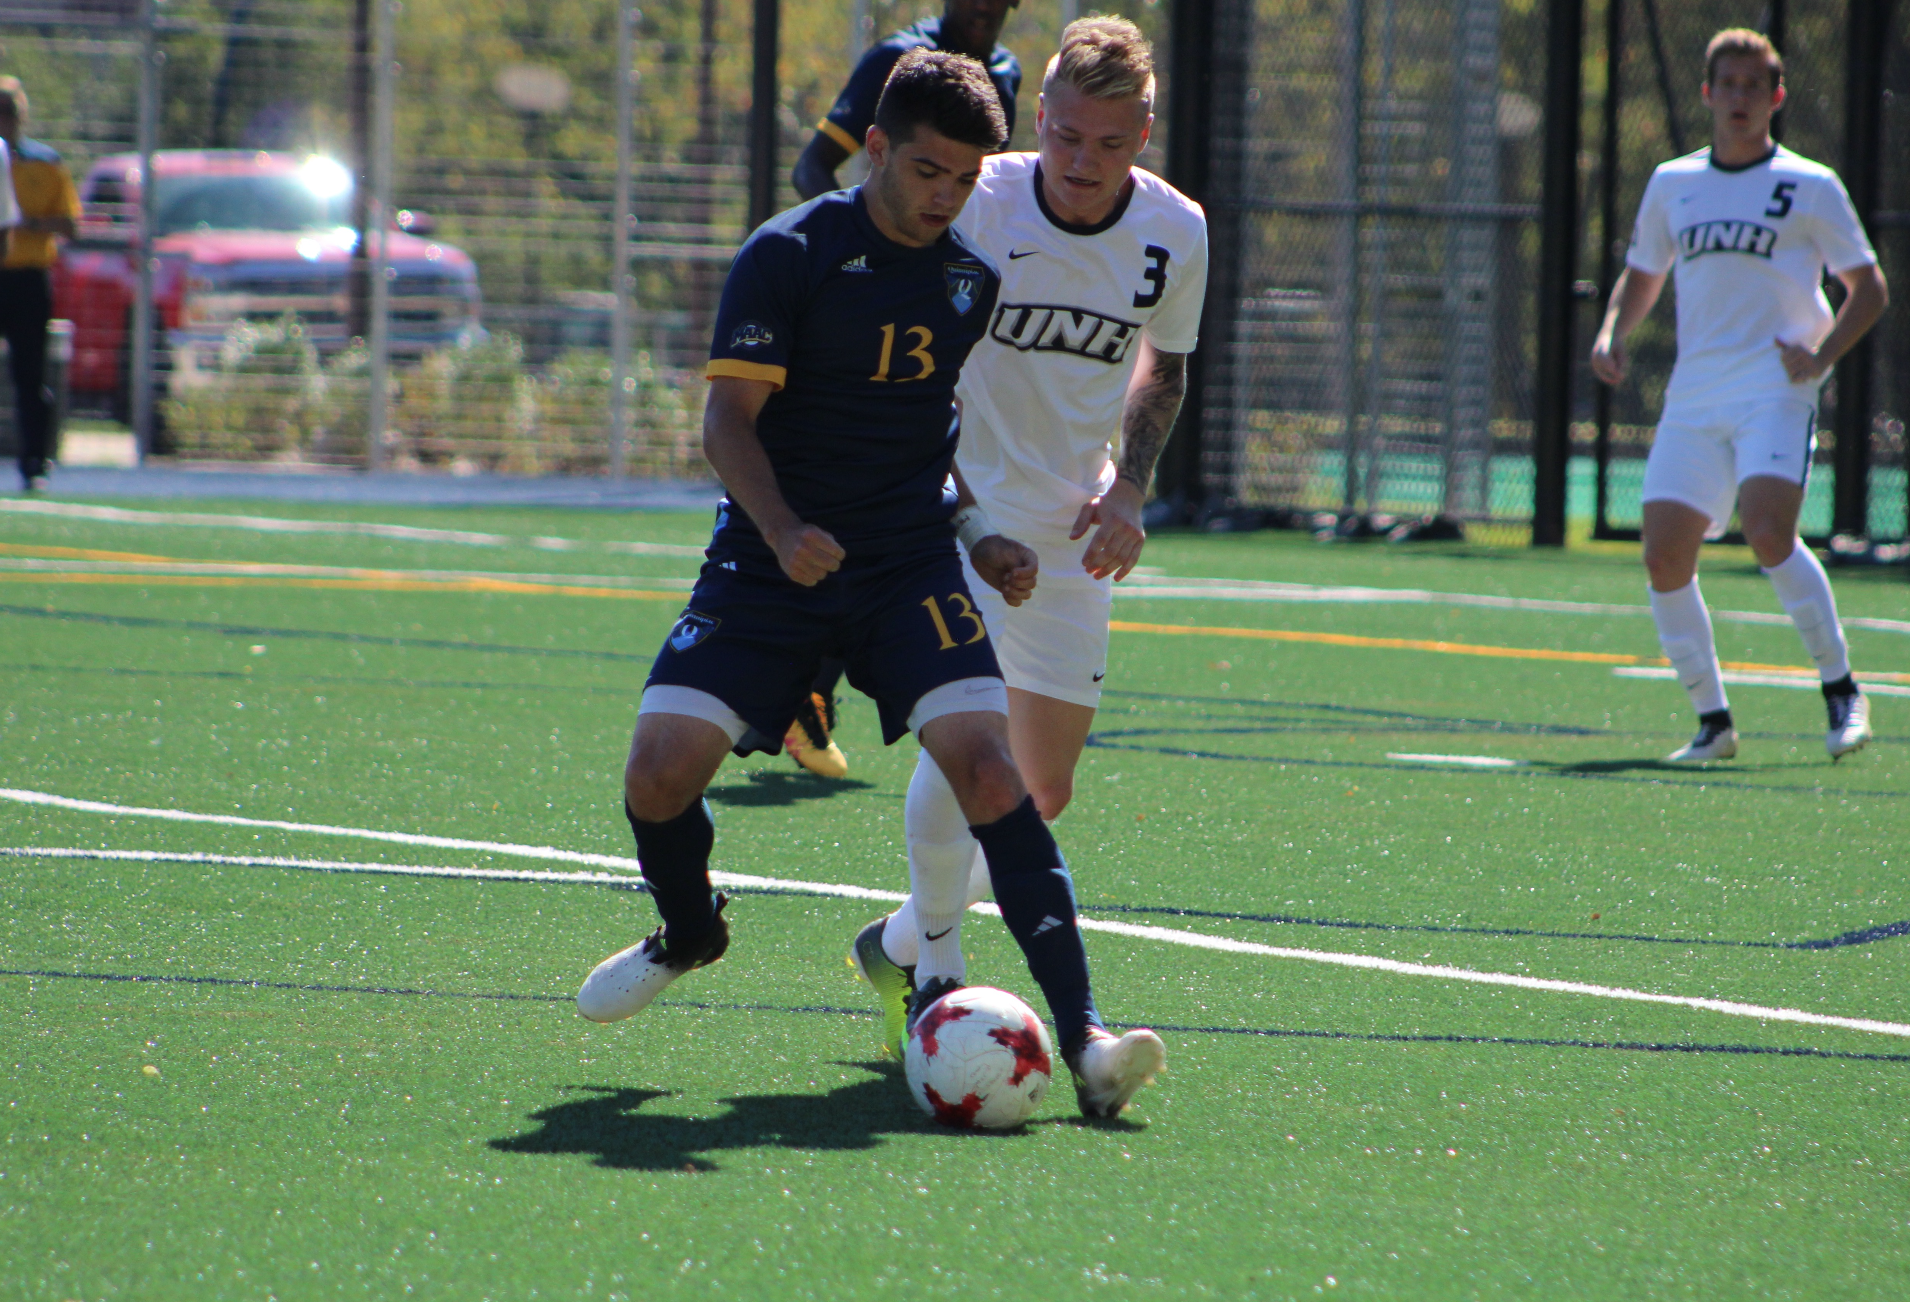 Quinnipiac men's soccer fails to score in loss to No. 14 New Hampshire